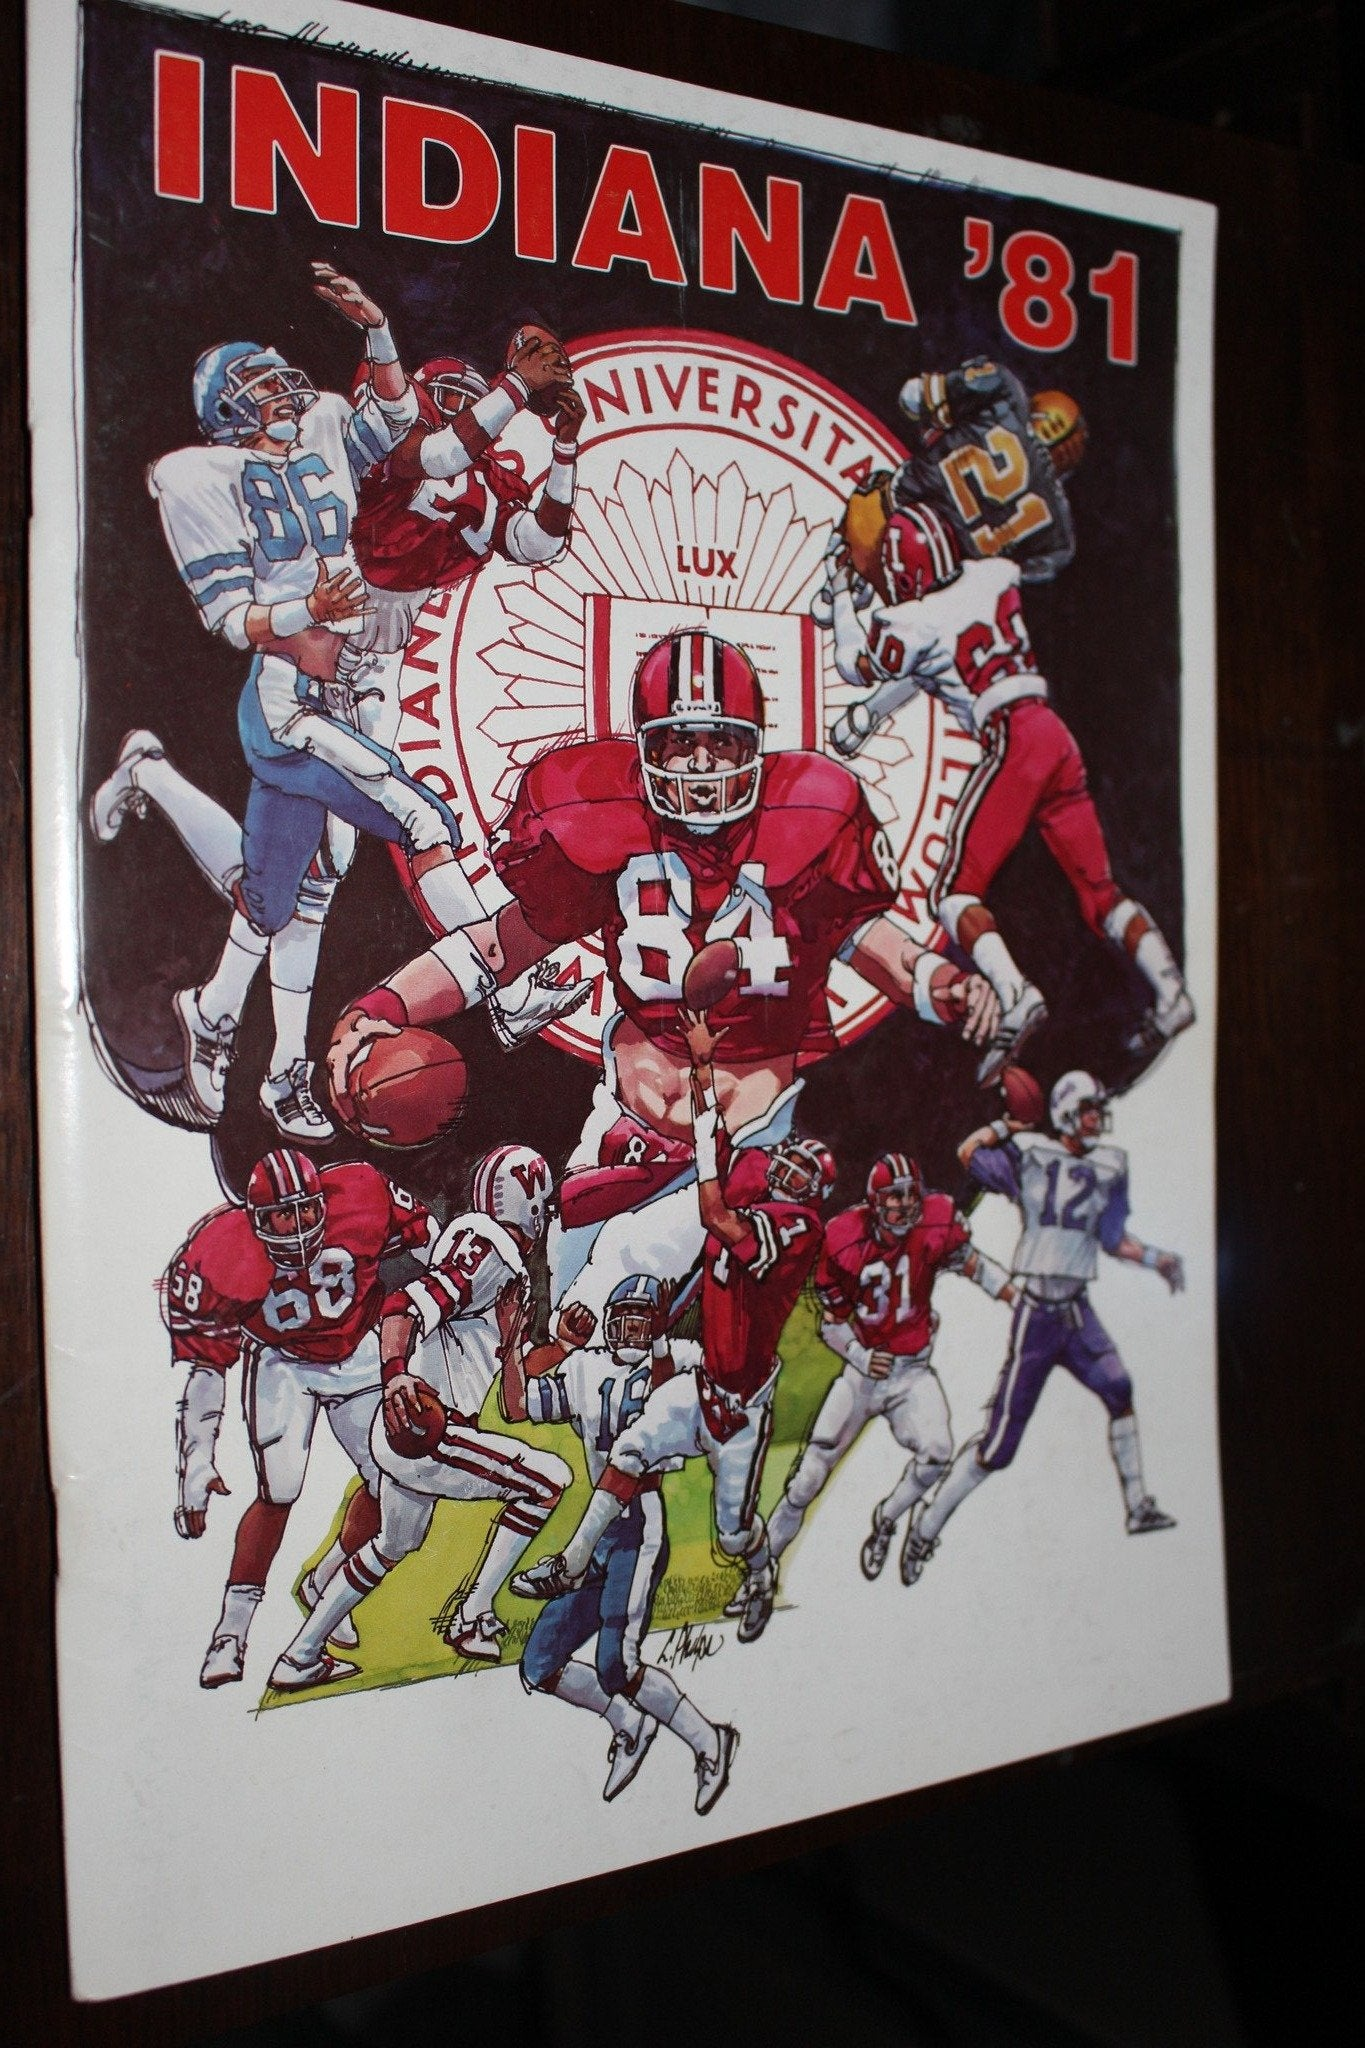 1981 Indiana University Football Media Guide - Vintage Indy Sports